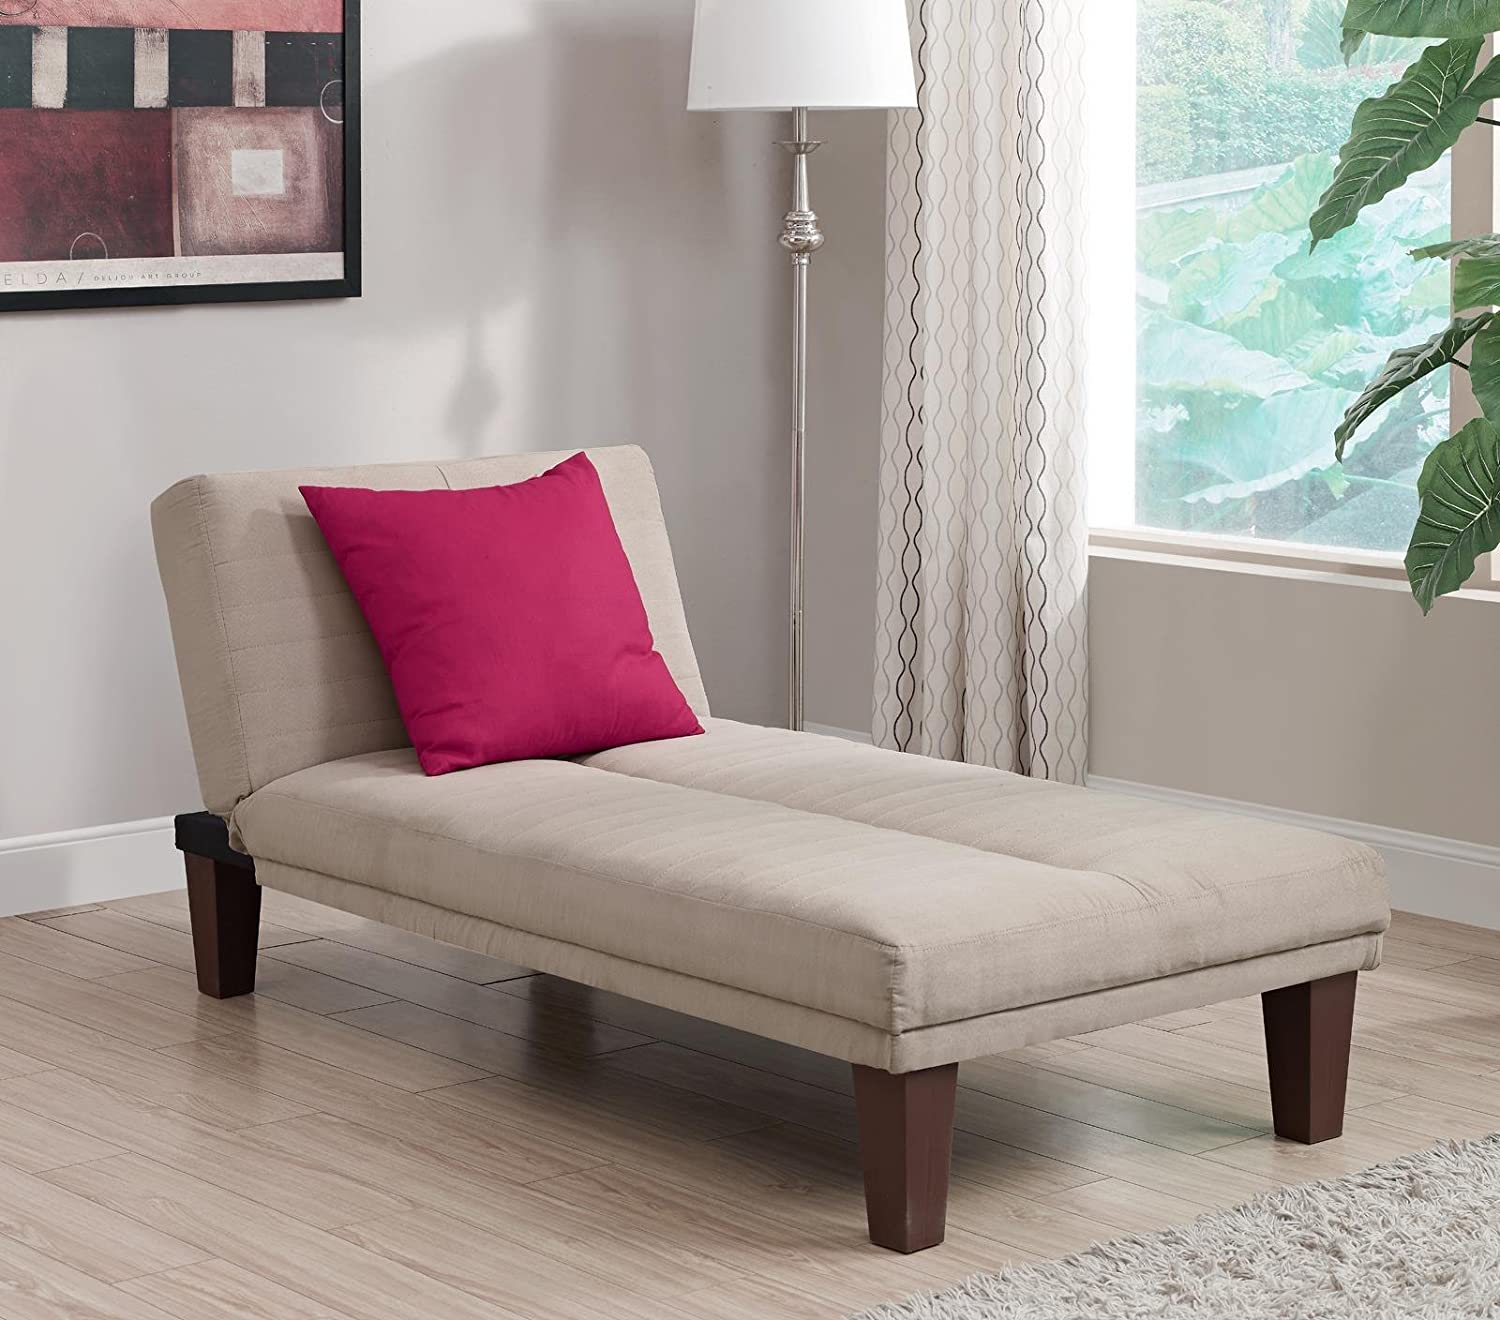 Amazon.com: DHP Dillan Chaise Lounger With Microfiber Upholstery And Wood  Legs   Tan: Kitchen U0026 Dining